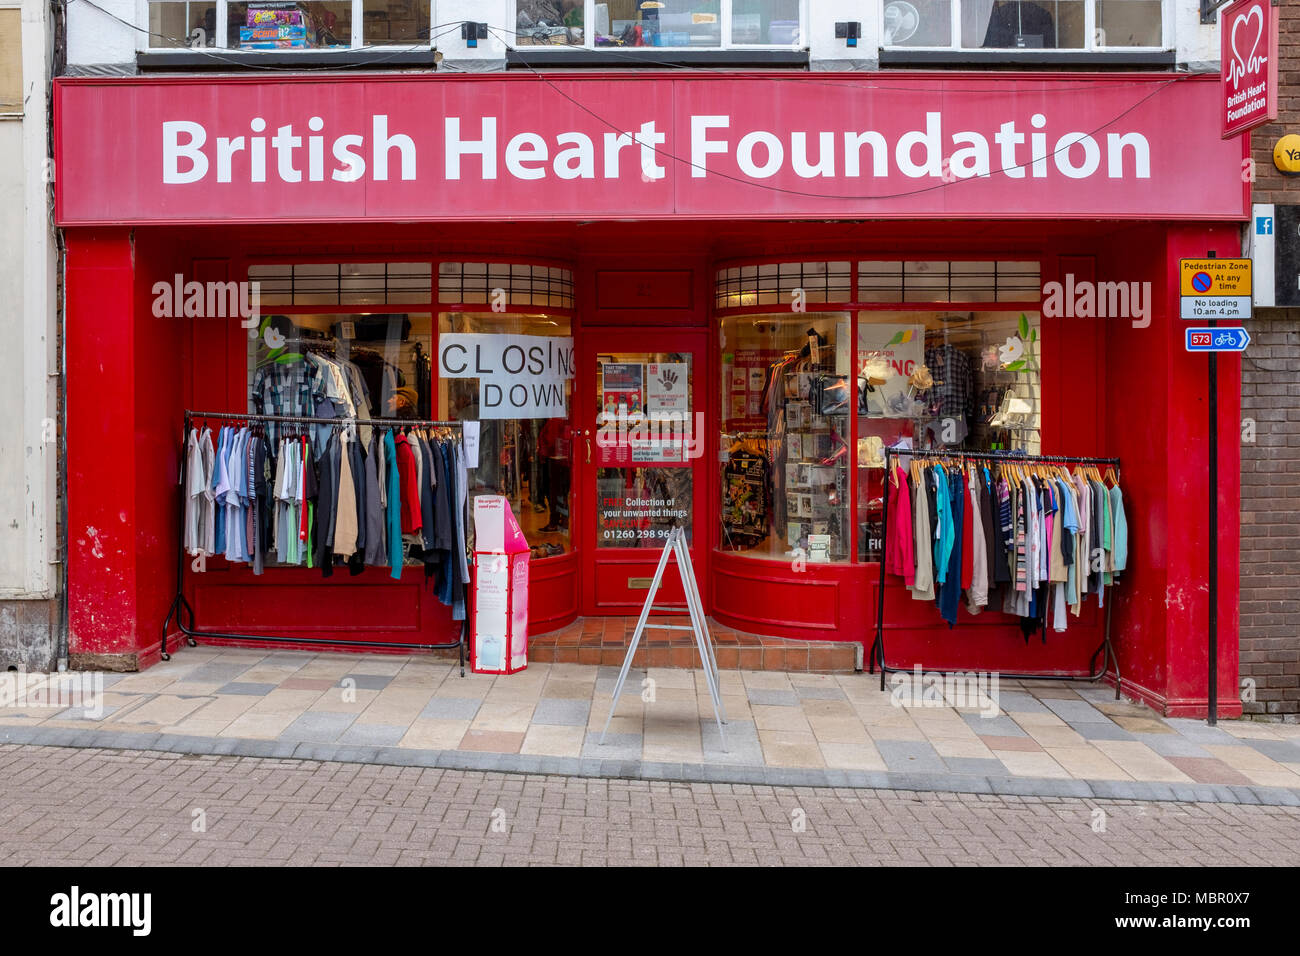 The closing down British Heart Foundation charity shop in Congleton Cheshire UK - Stock Image